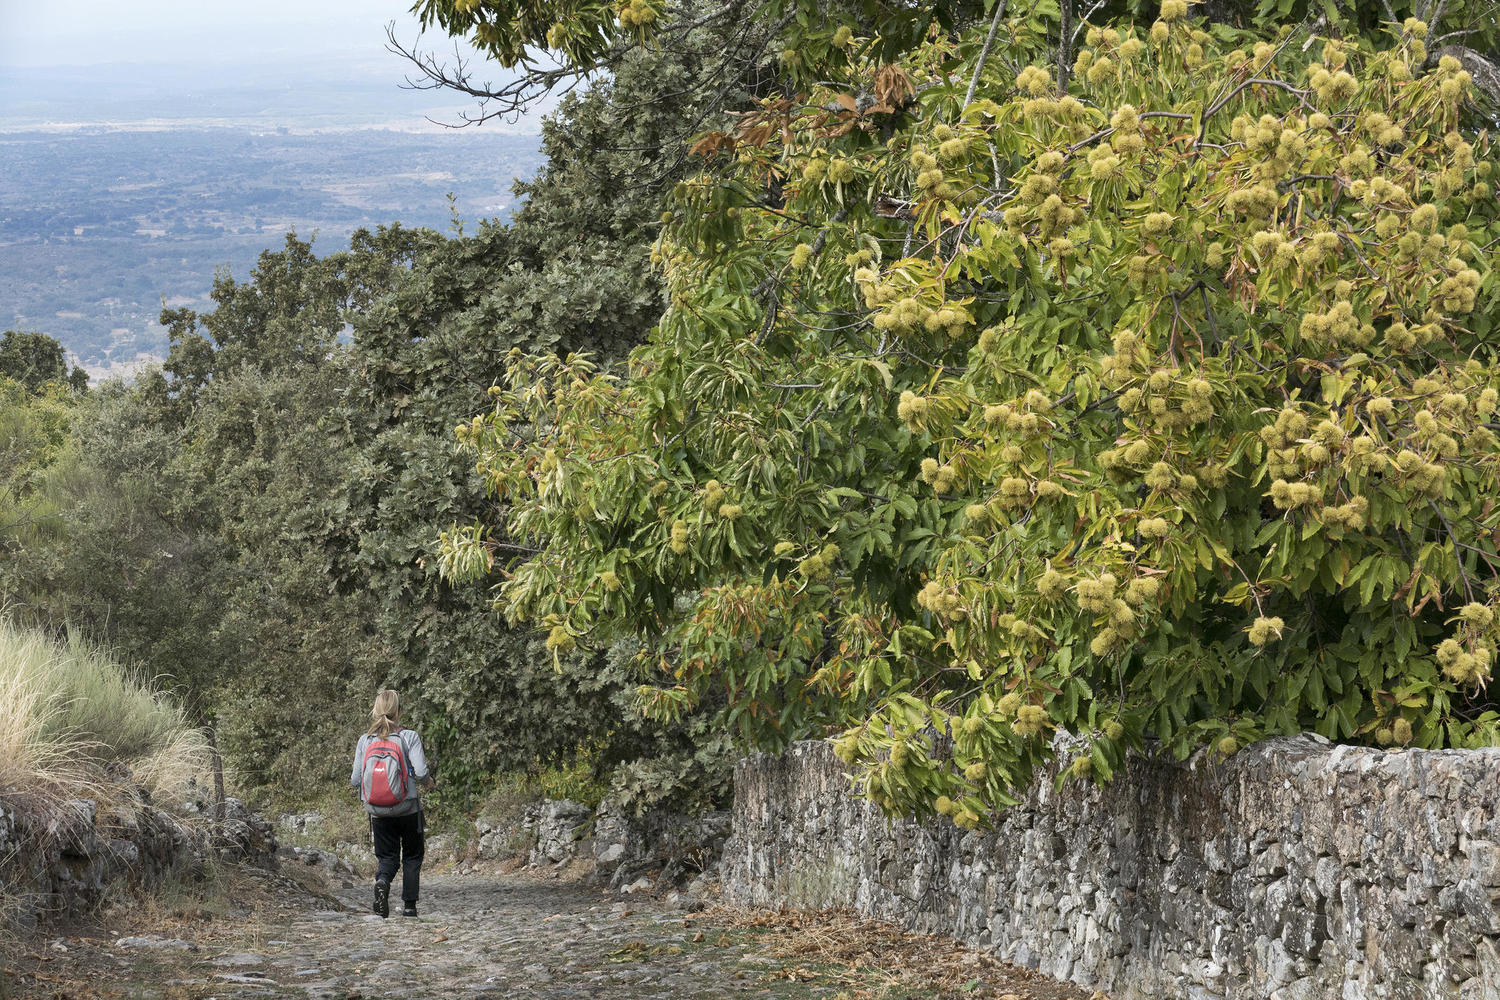 Walking down the steep medieval pathway from Marvao towards Castelo de Vide